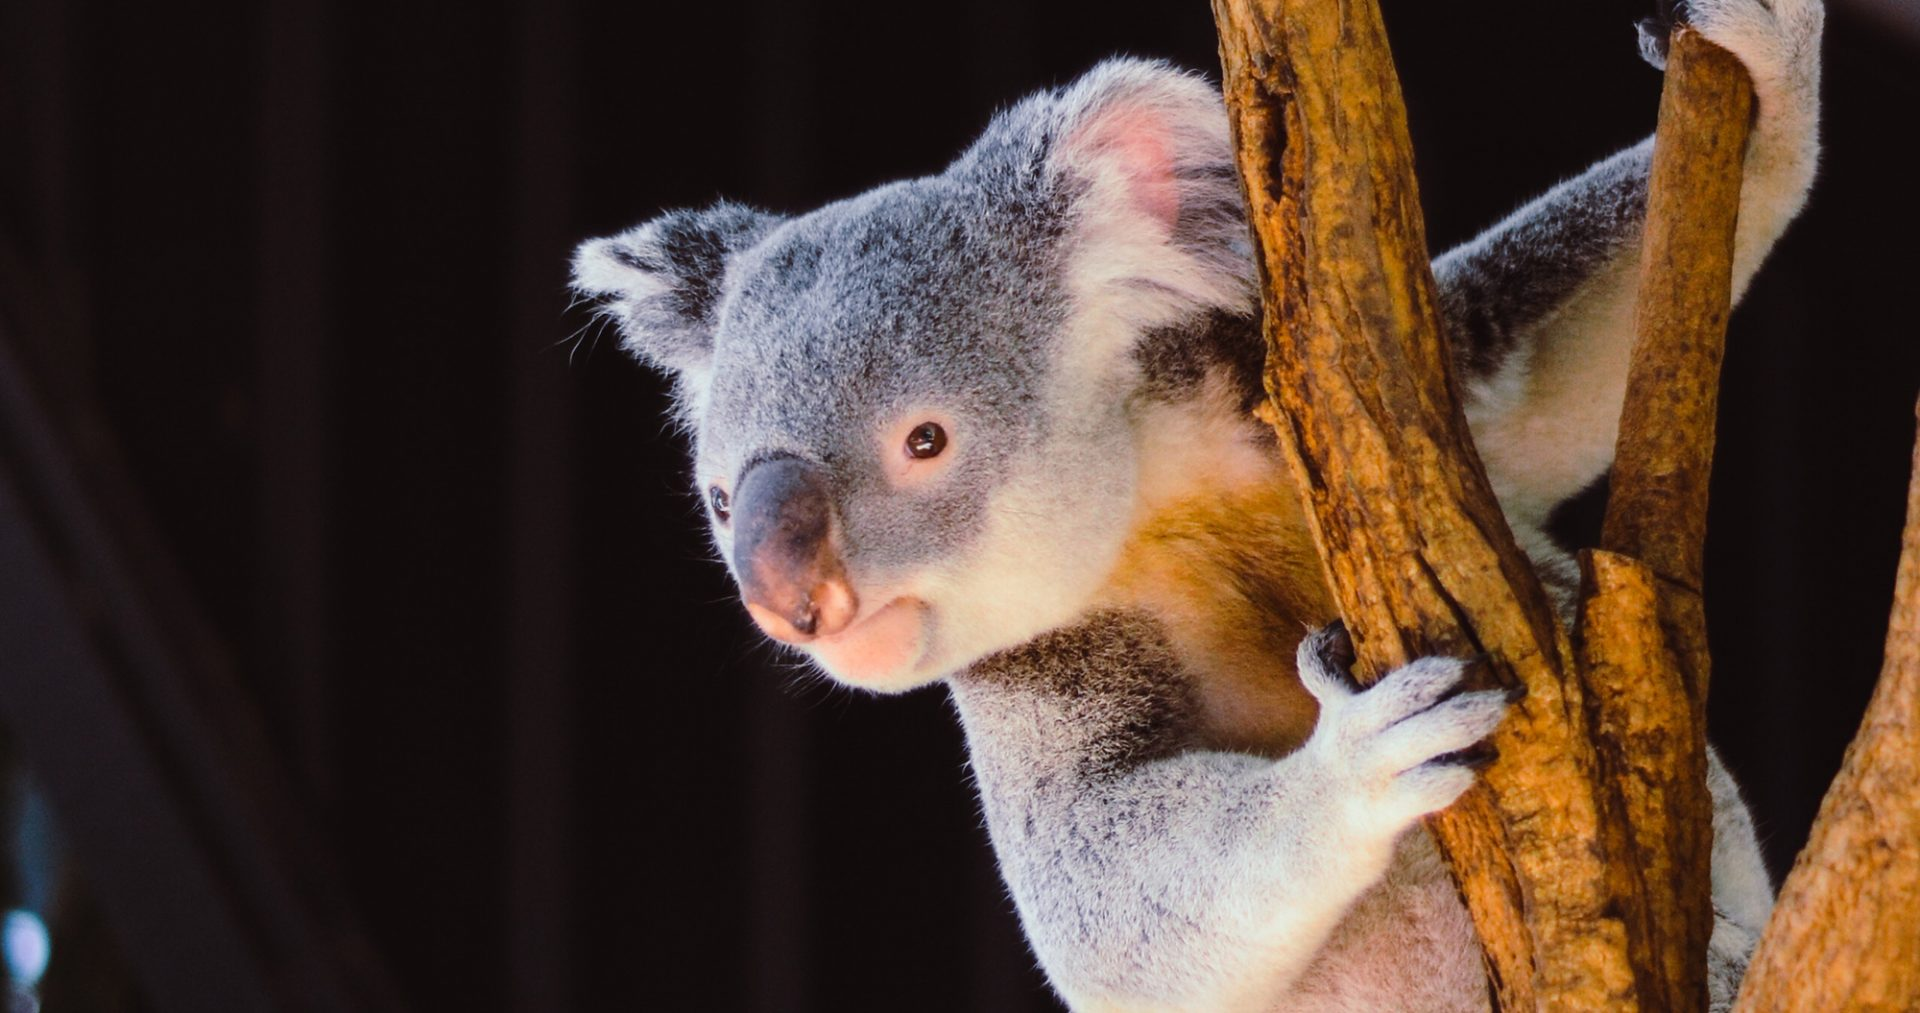 a to z travelling australia top facts destinations backpacker working holiday visa